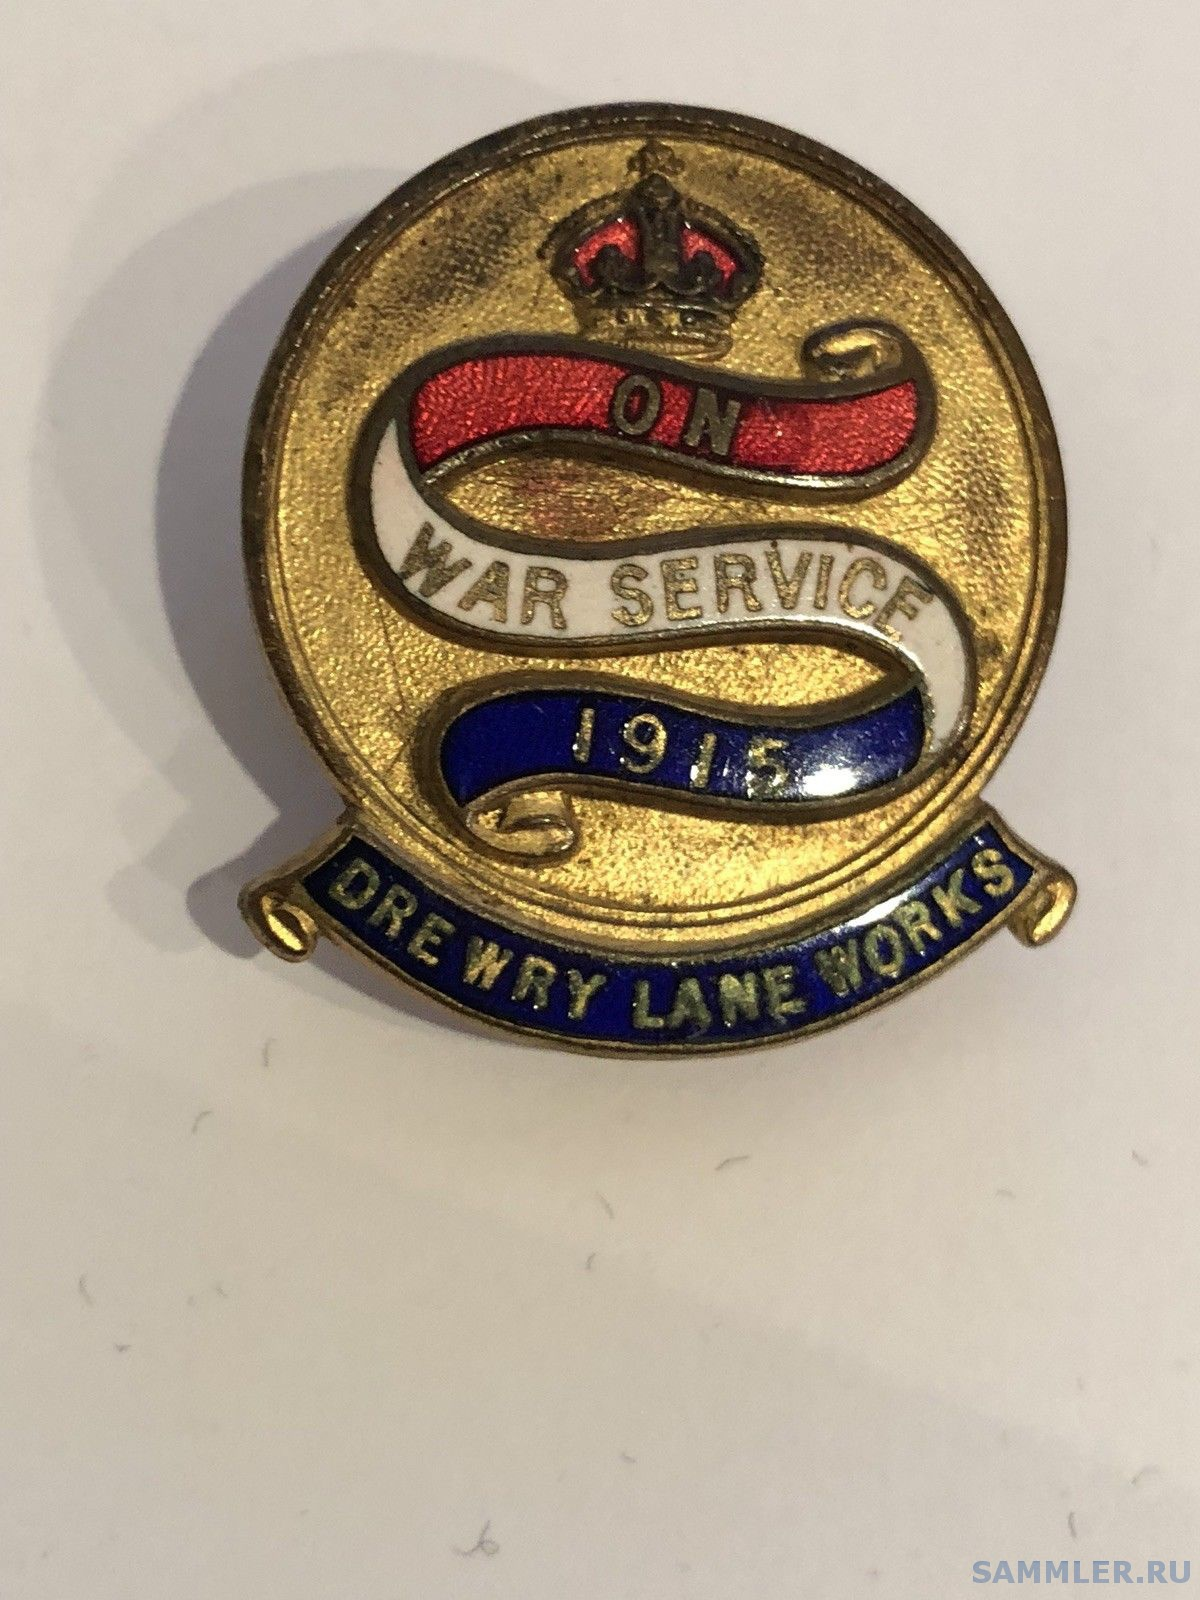 James Smith Drewry Lane site Derby-1914 Army, railway and police uniform contractors..jpg